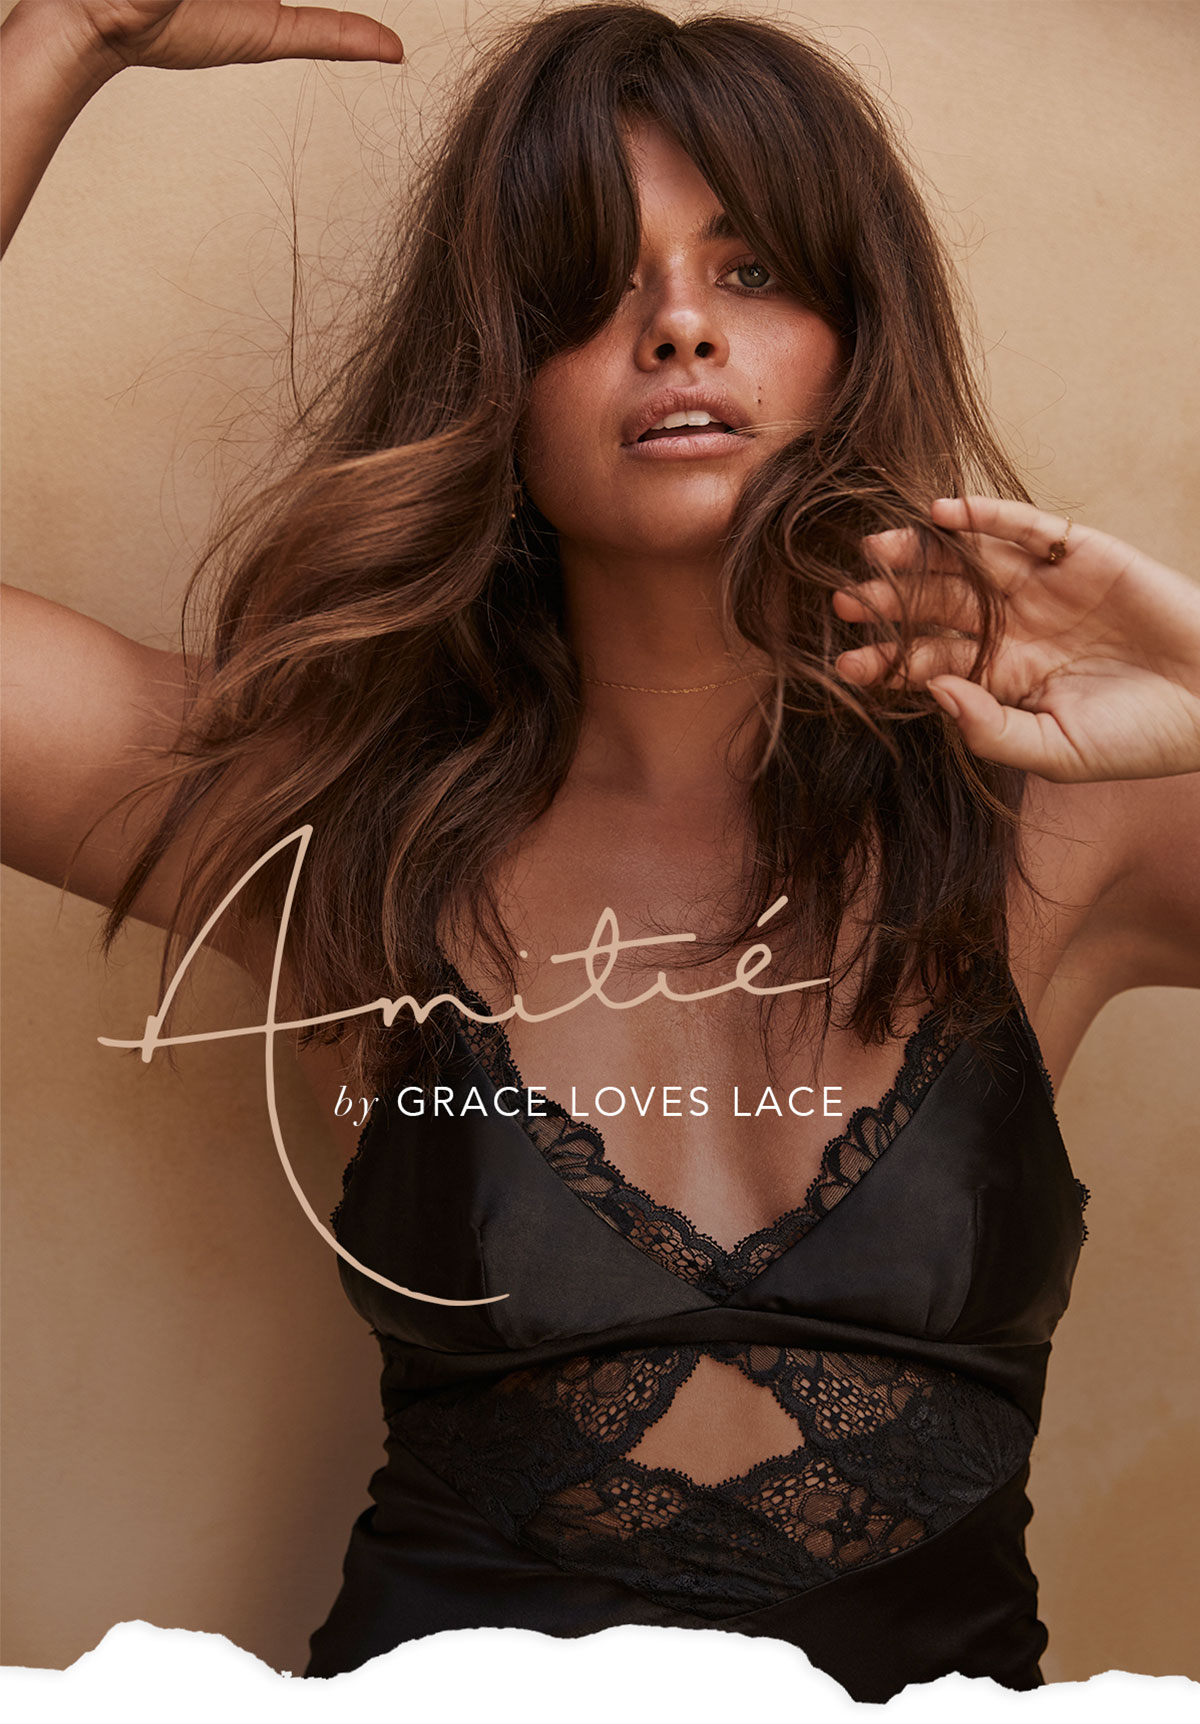 Amitié by Grace Loves Lace